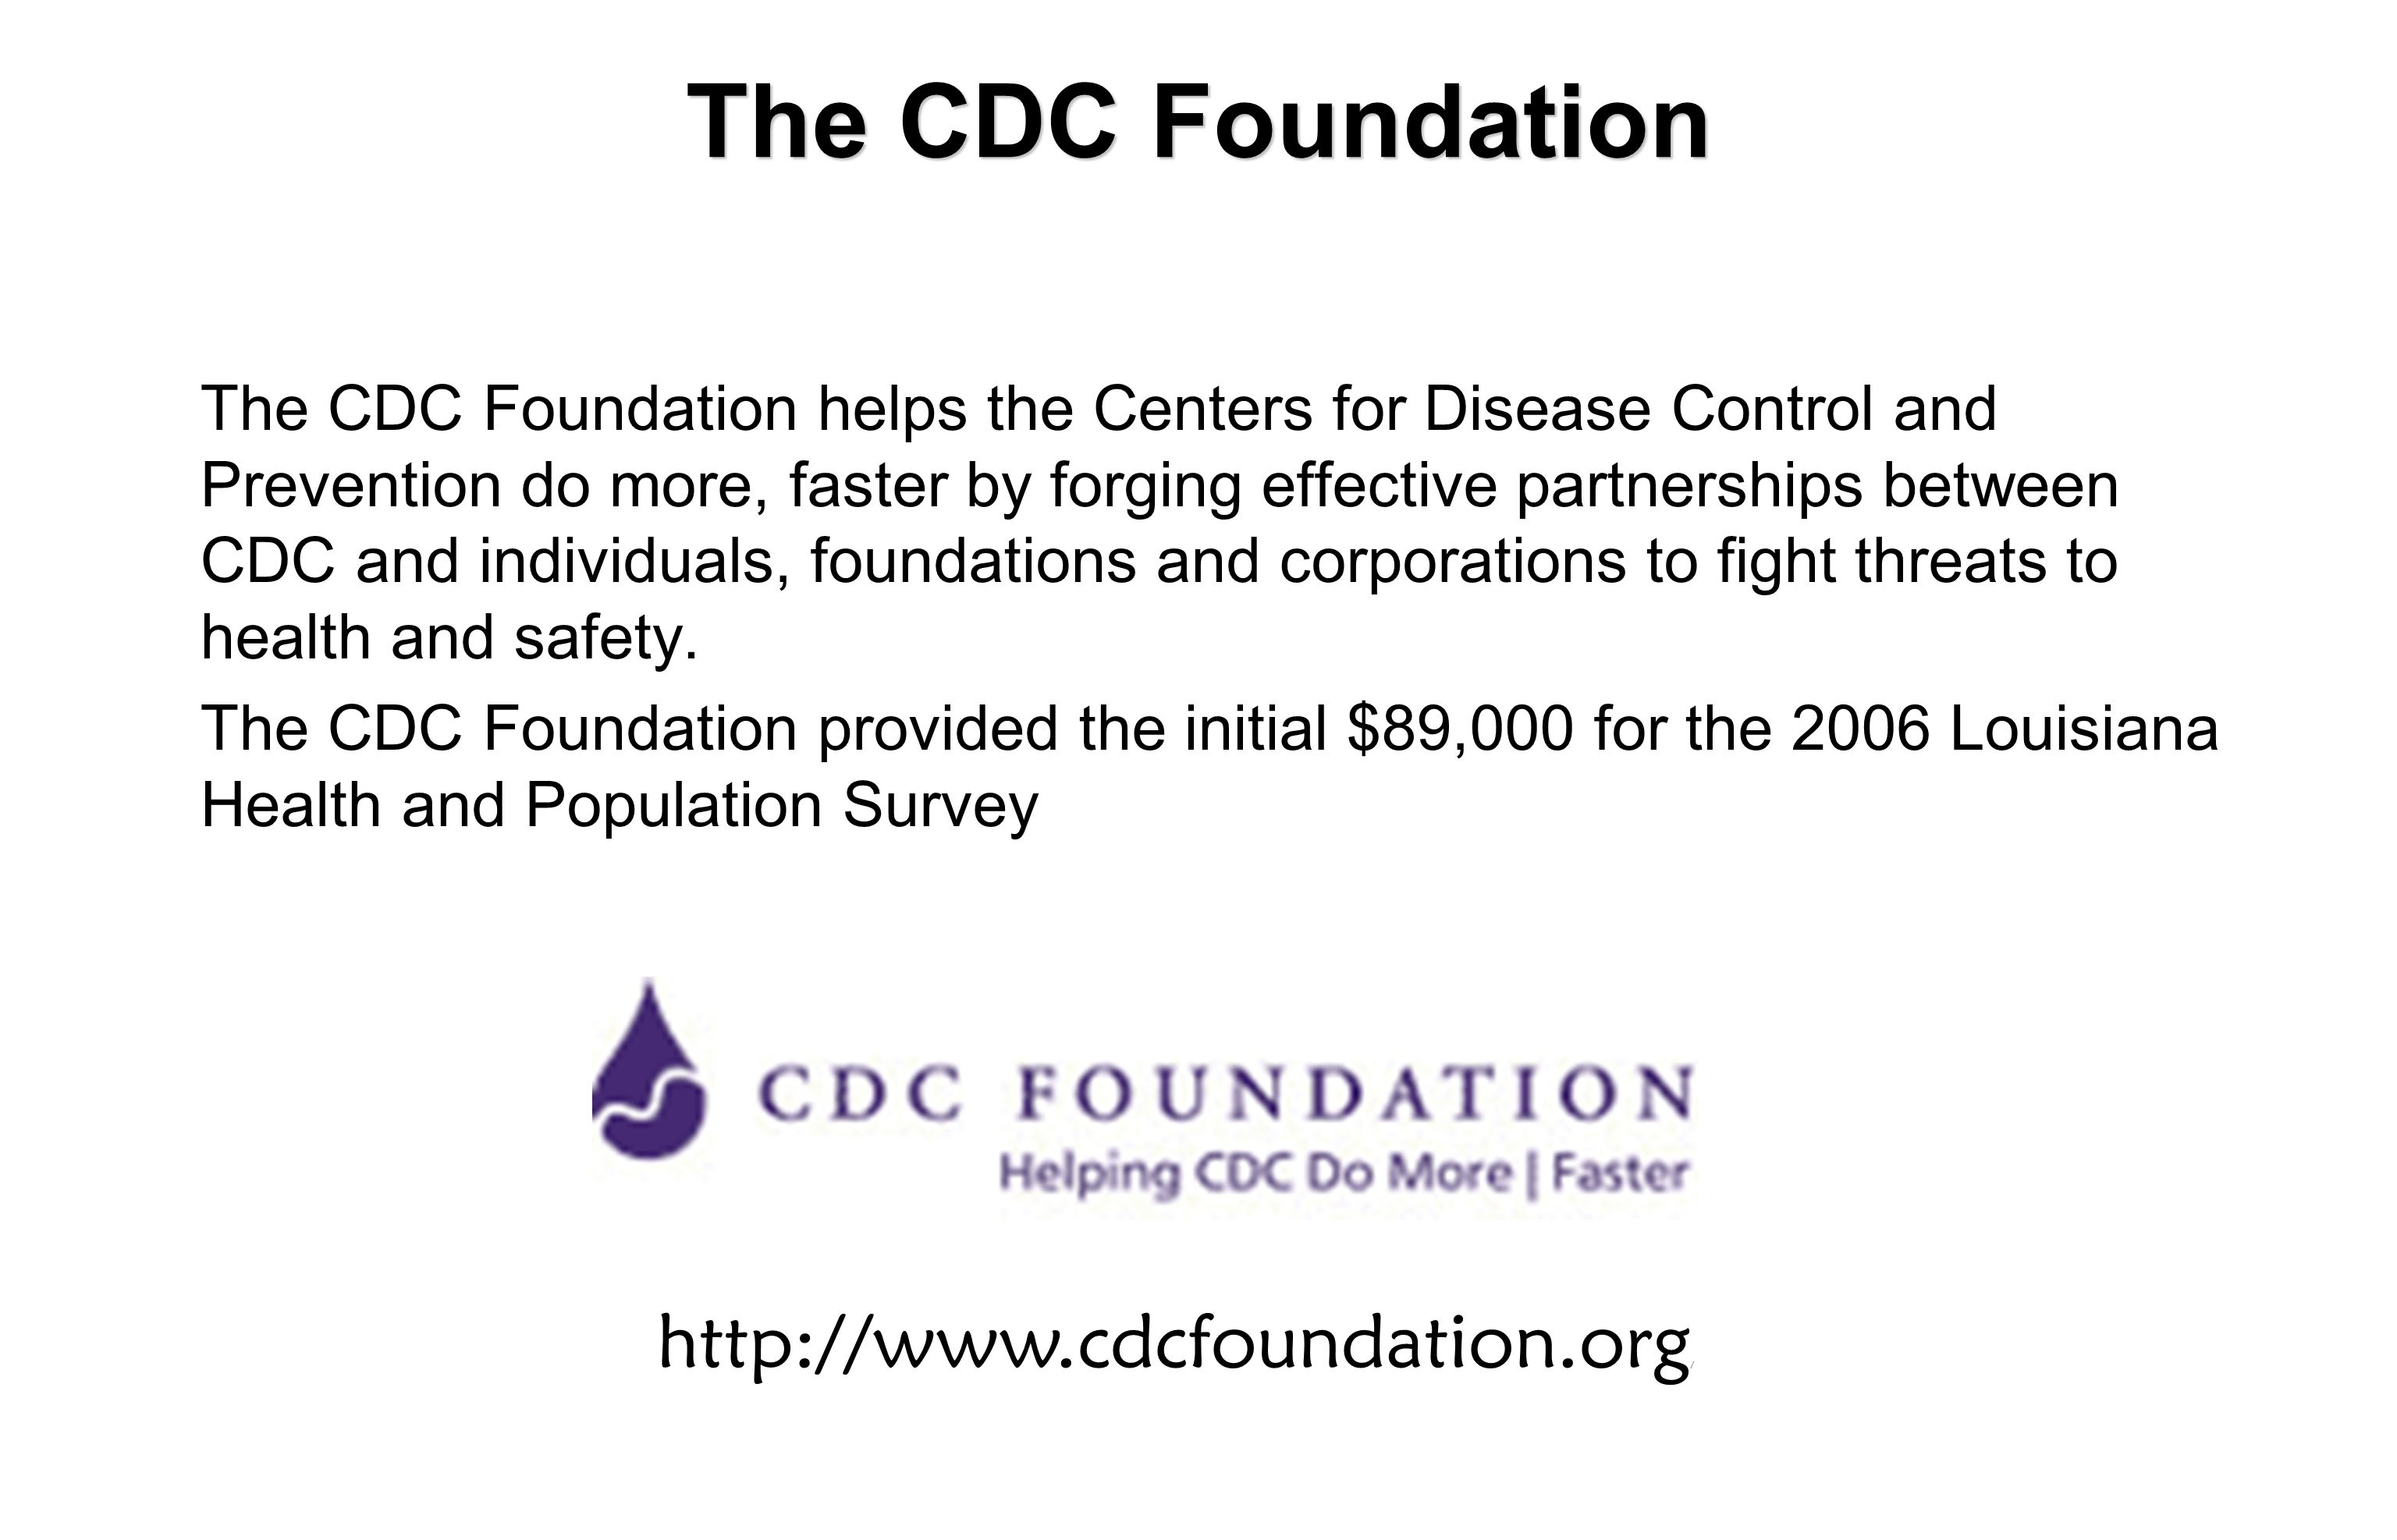 The CDC Foundation The CDC Foundation helps the Centers for Disease Control and Prevention do more, faster by forging effective partnerships between CDC and individuals, foundations and corporations to fight threats to health and safety.